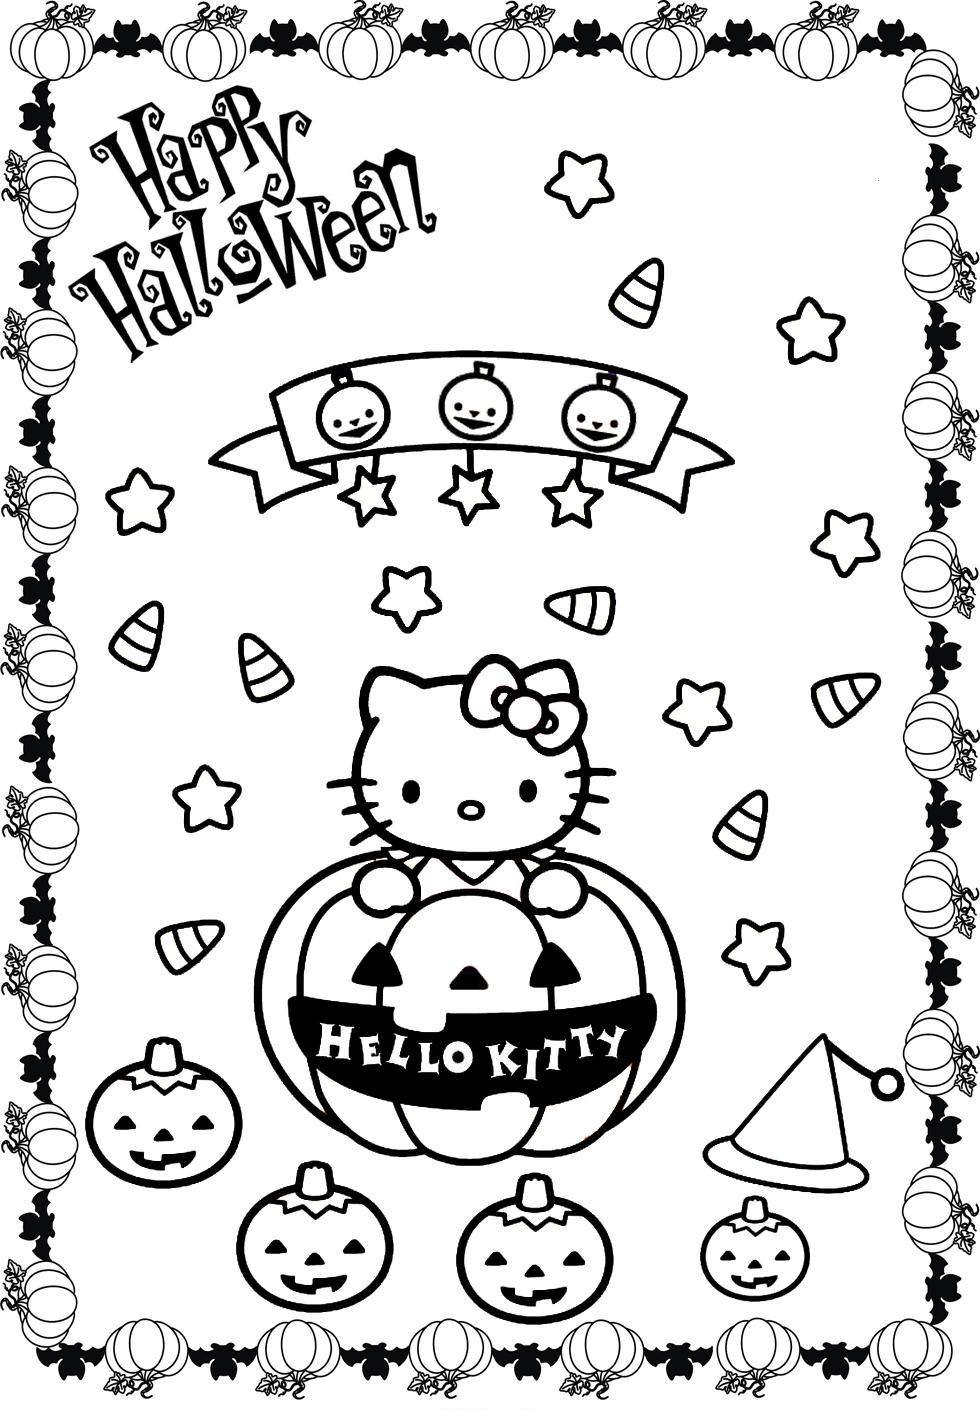 hello kitty halloween coloring page - coloring home - Cute Halloween Cat Coloring Pages